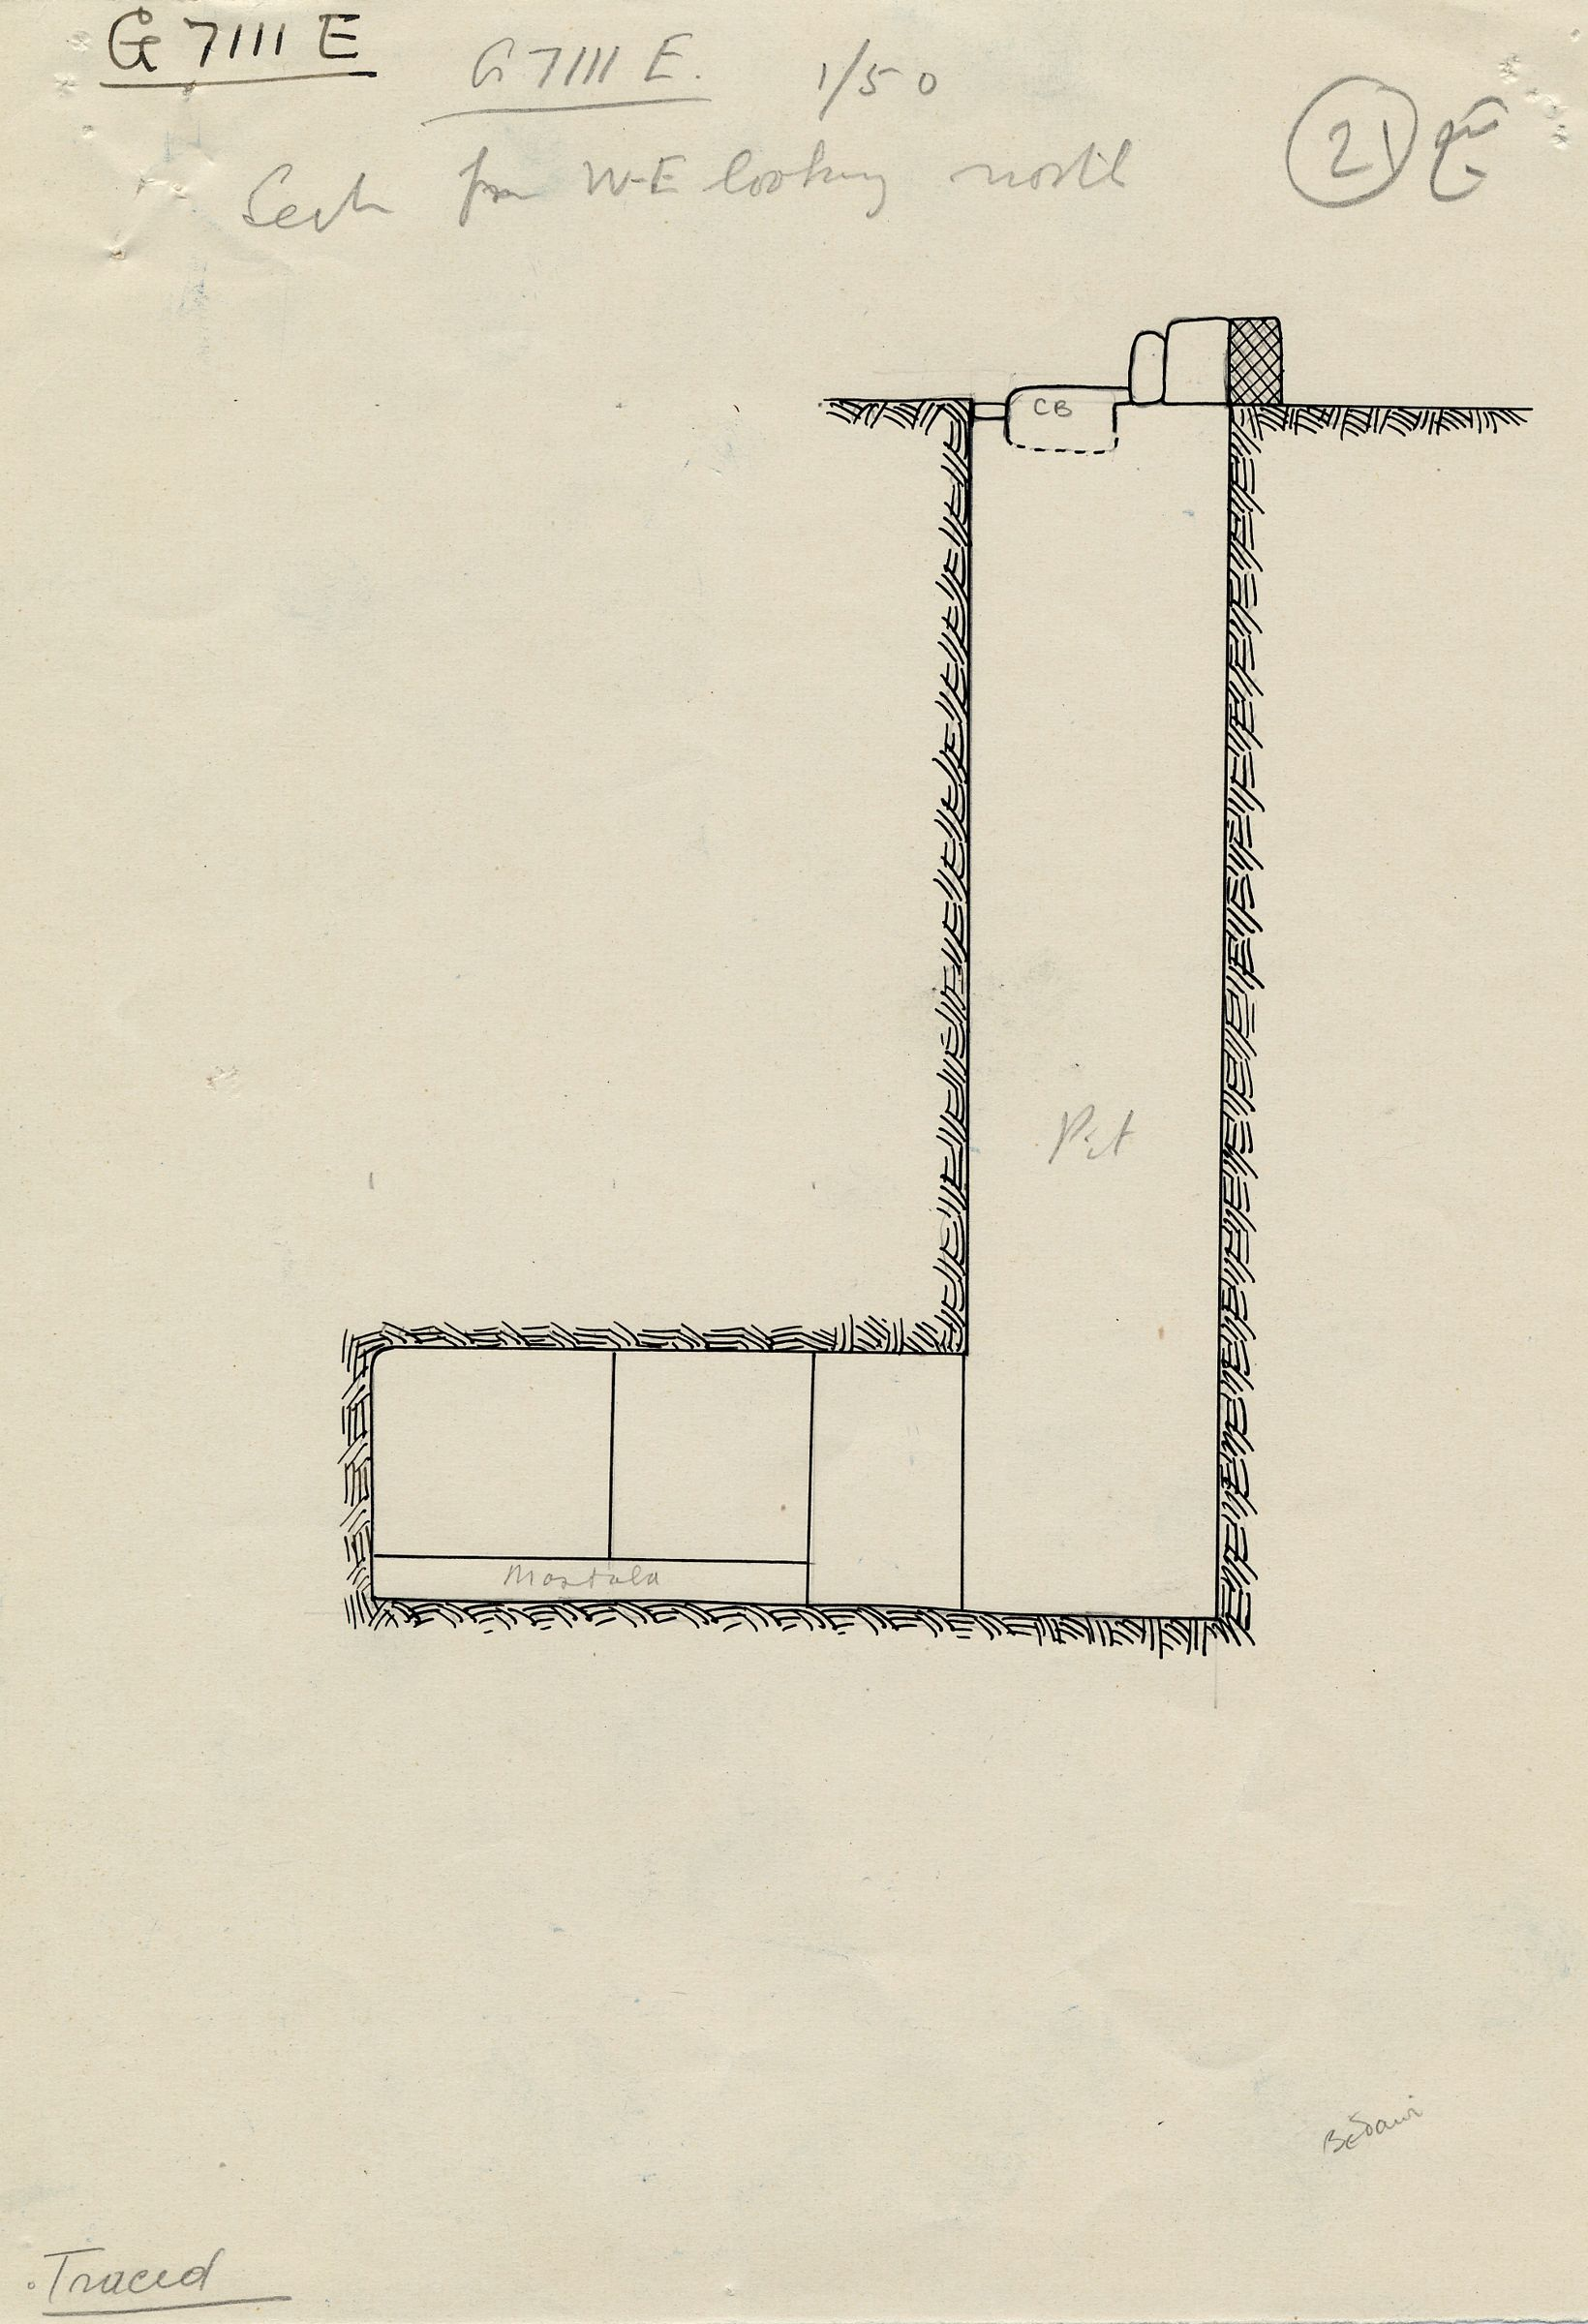 Maps and plans: G 7111, Shaft E